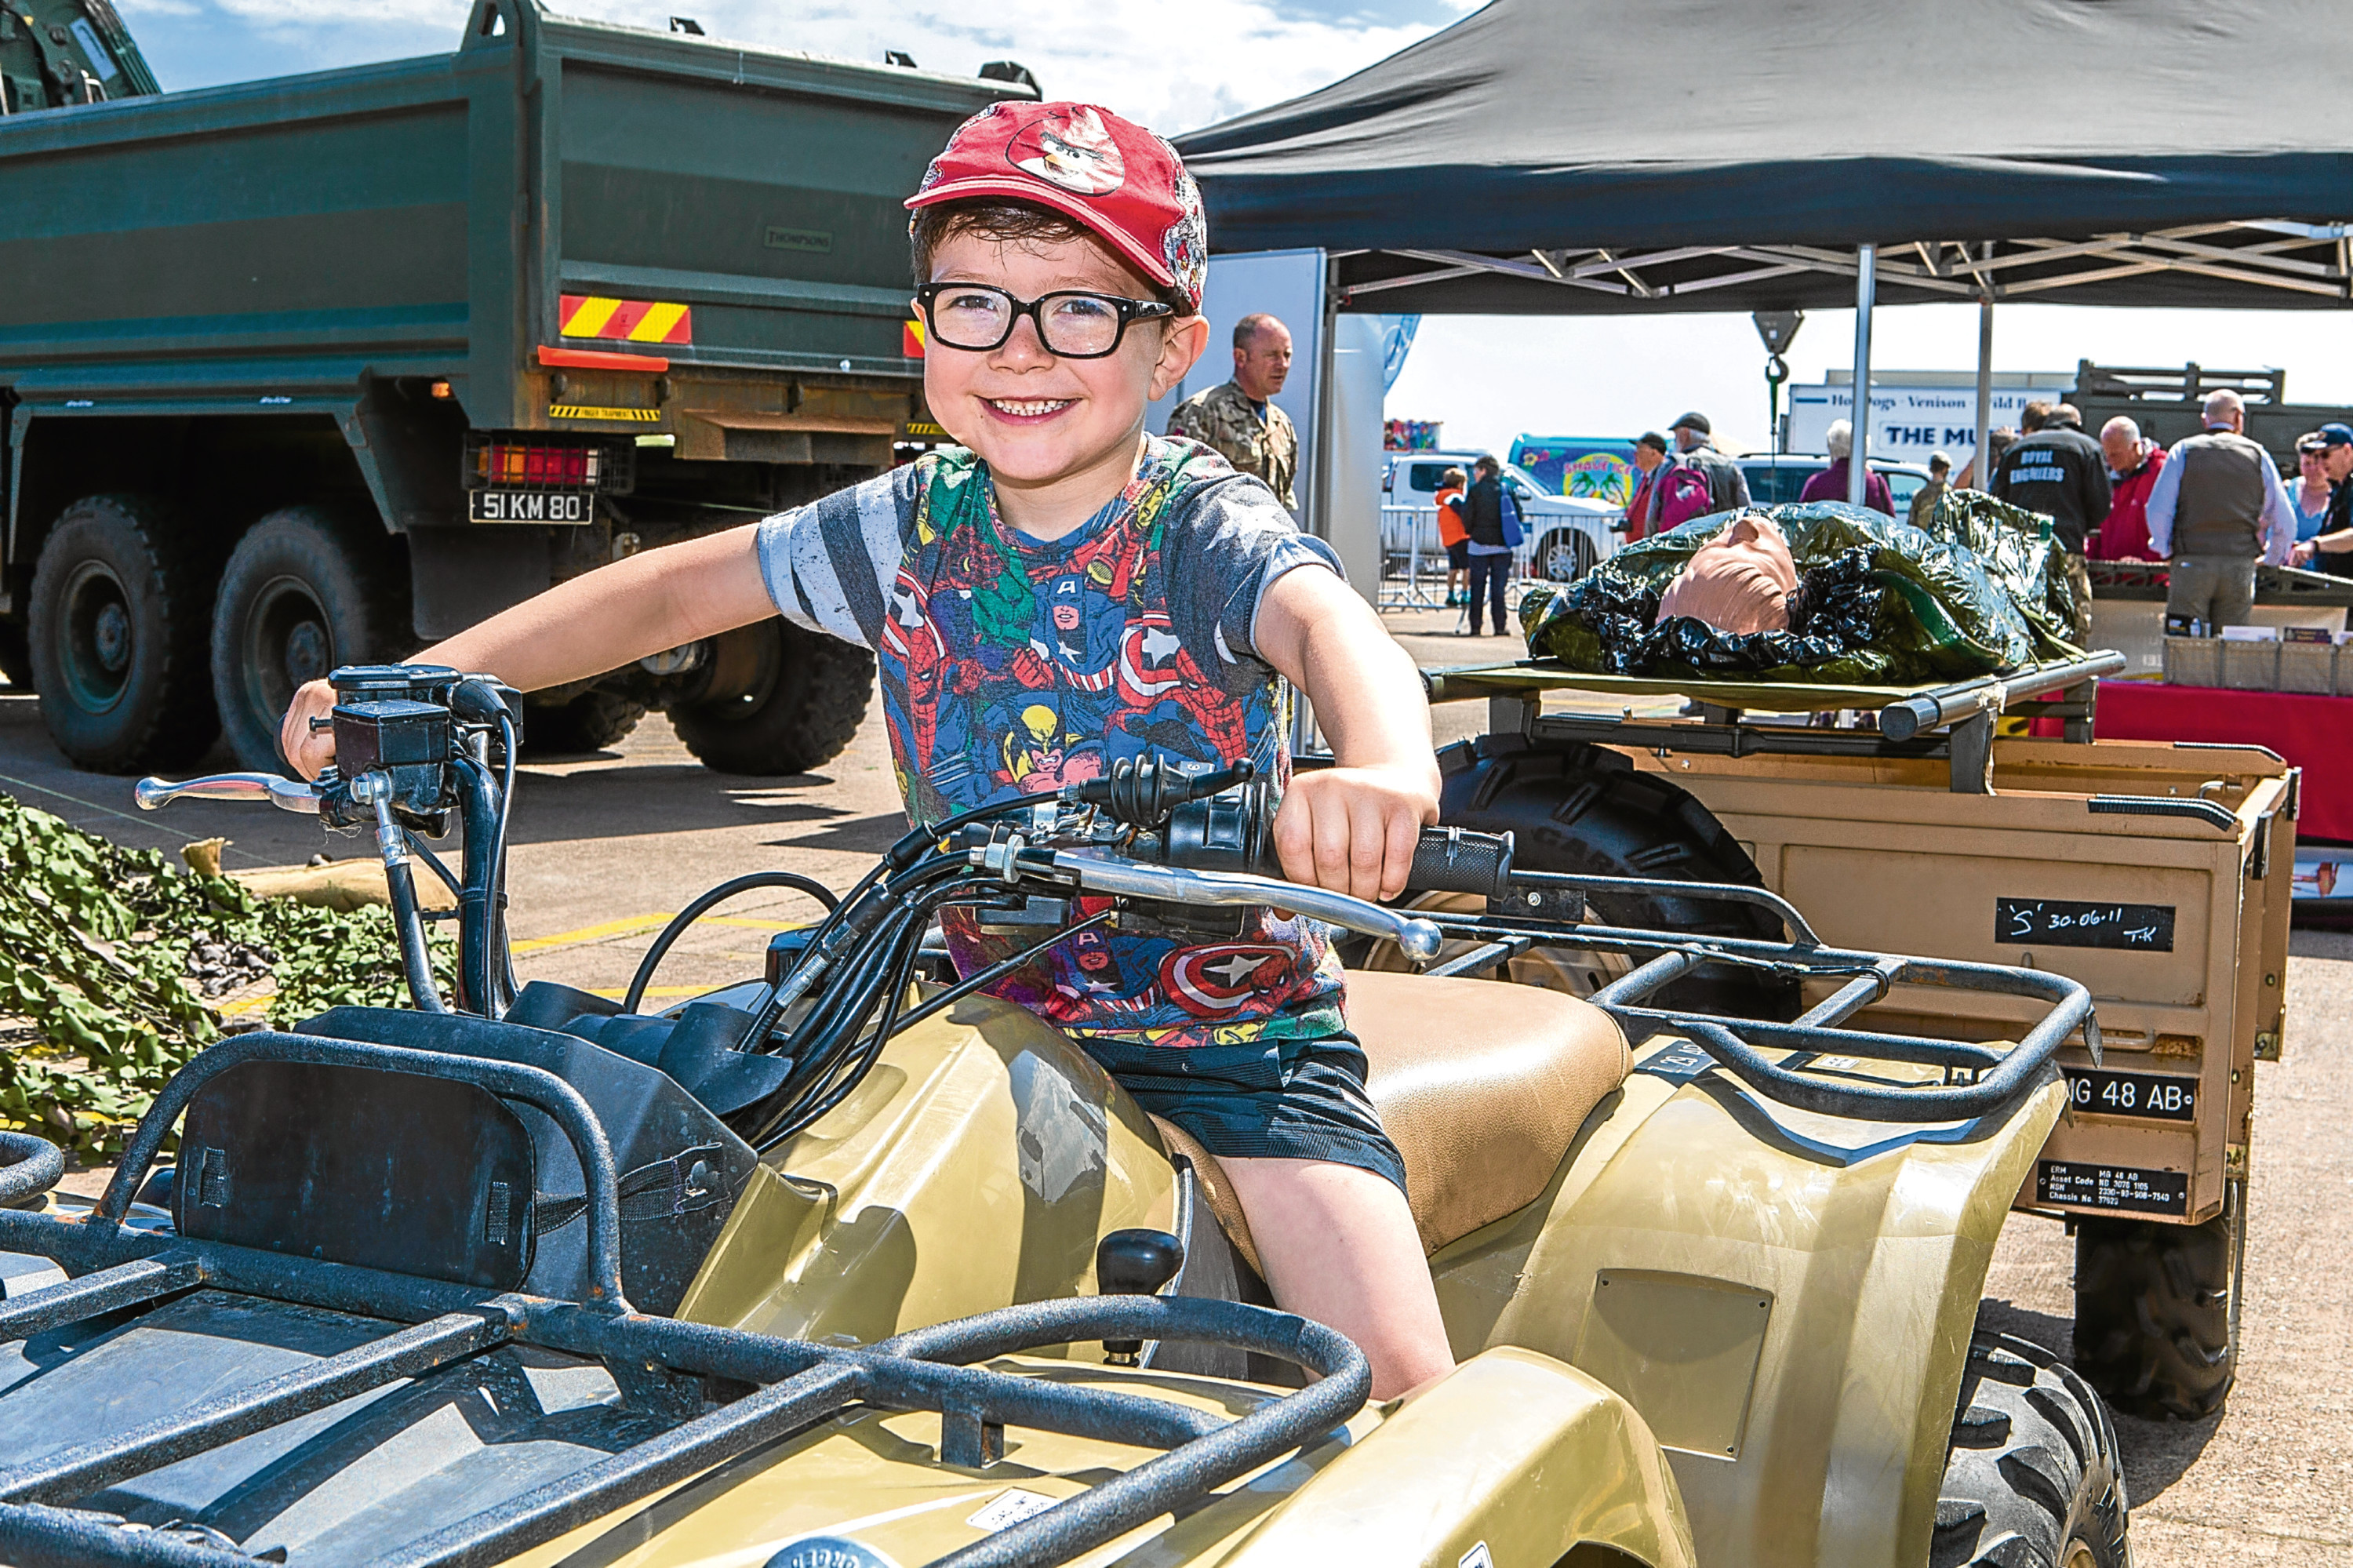 Owen Lovell enjoying the weather at Leuchars Station open day on Saturday.